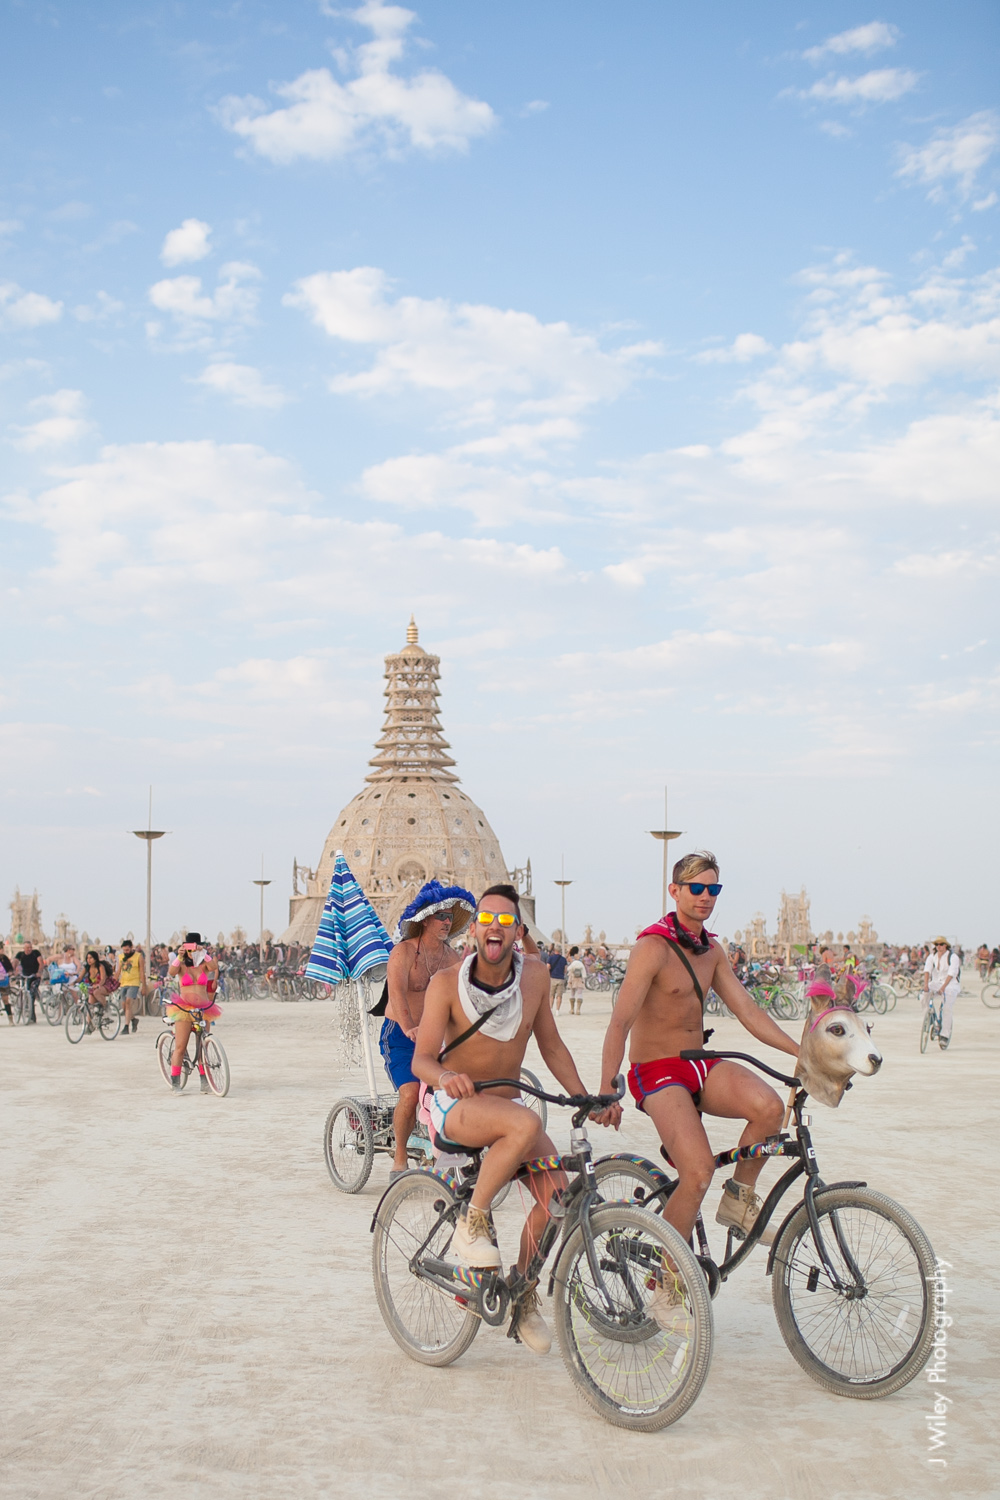 burning man 2014 caravansary art car playa temple-16